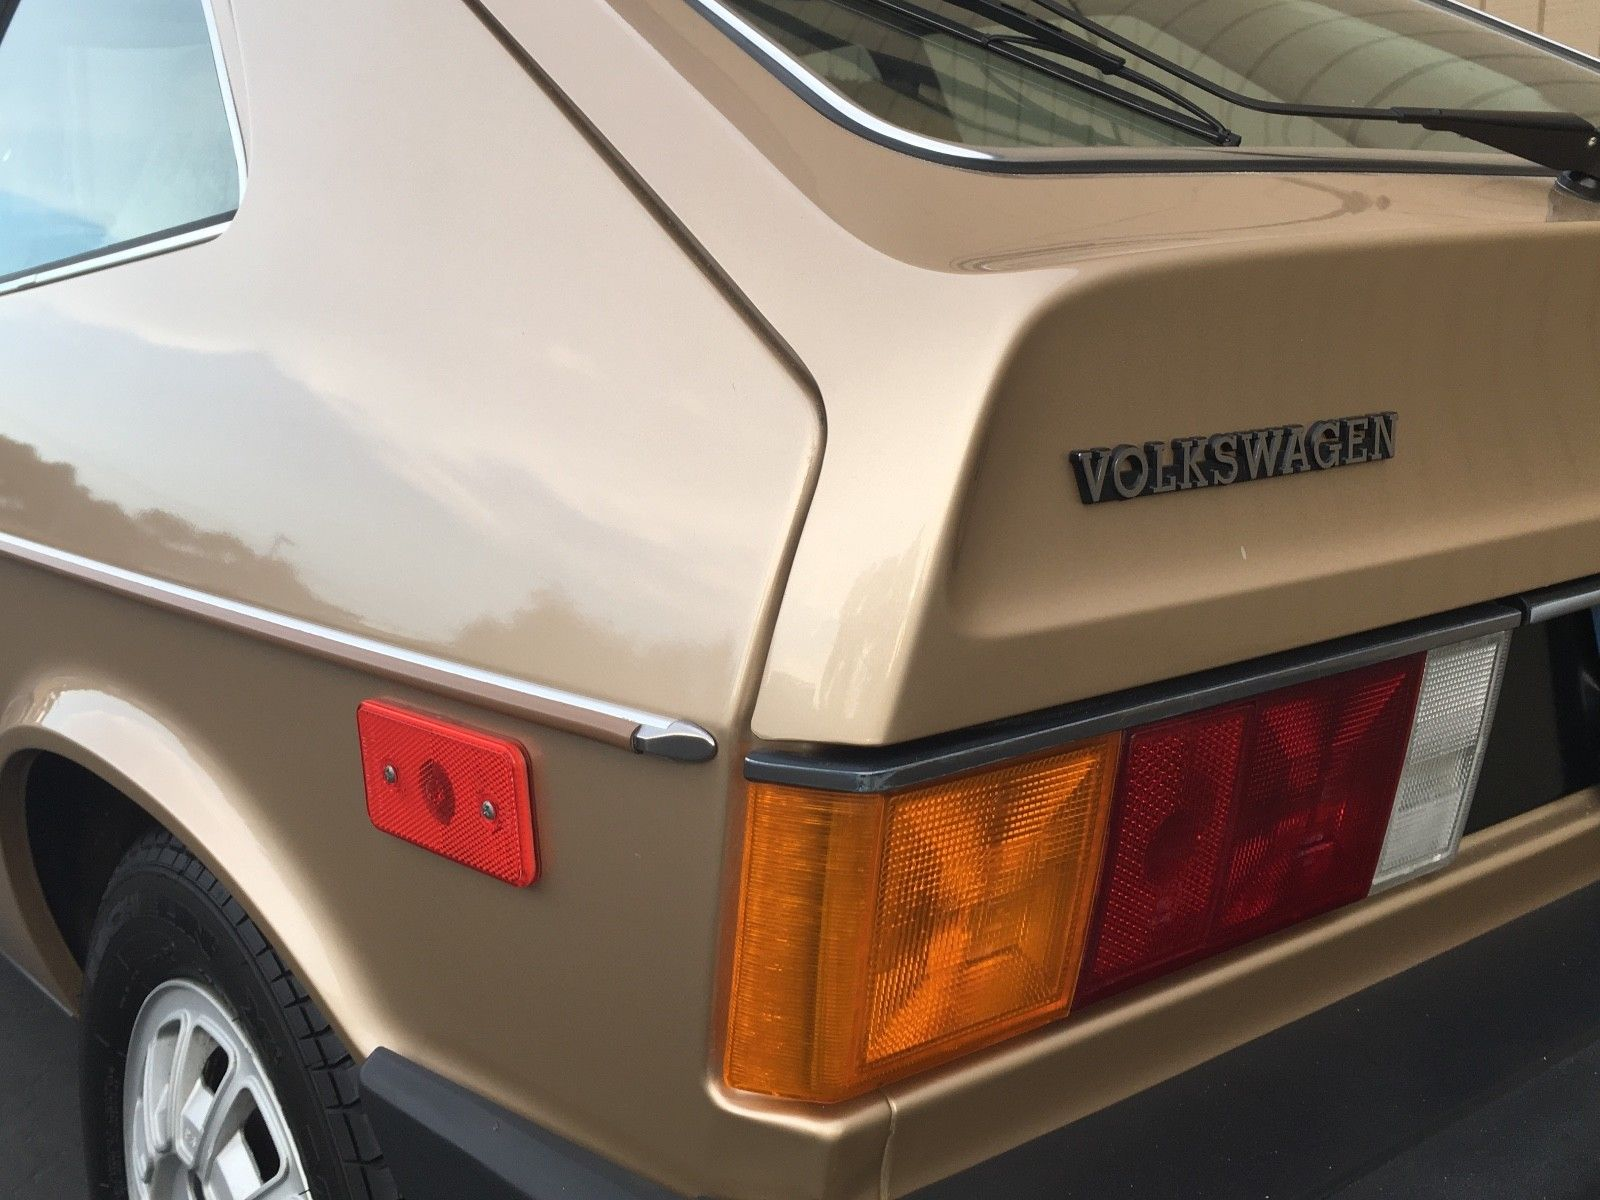 1978 Volkswagen Scirocco rear badge 2